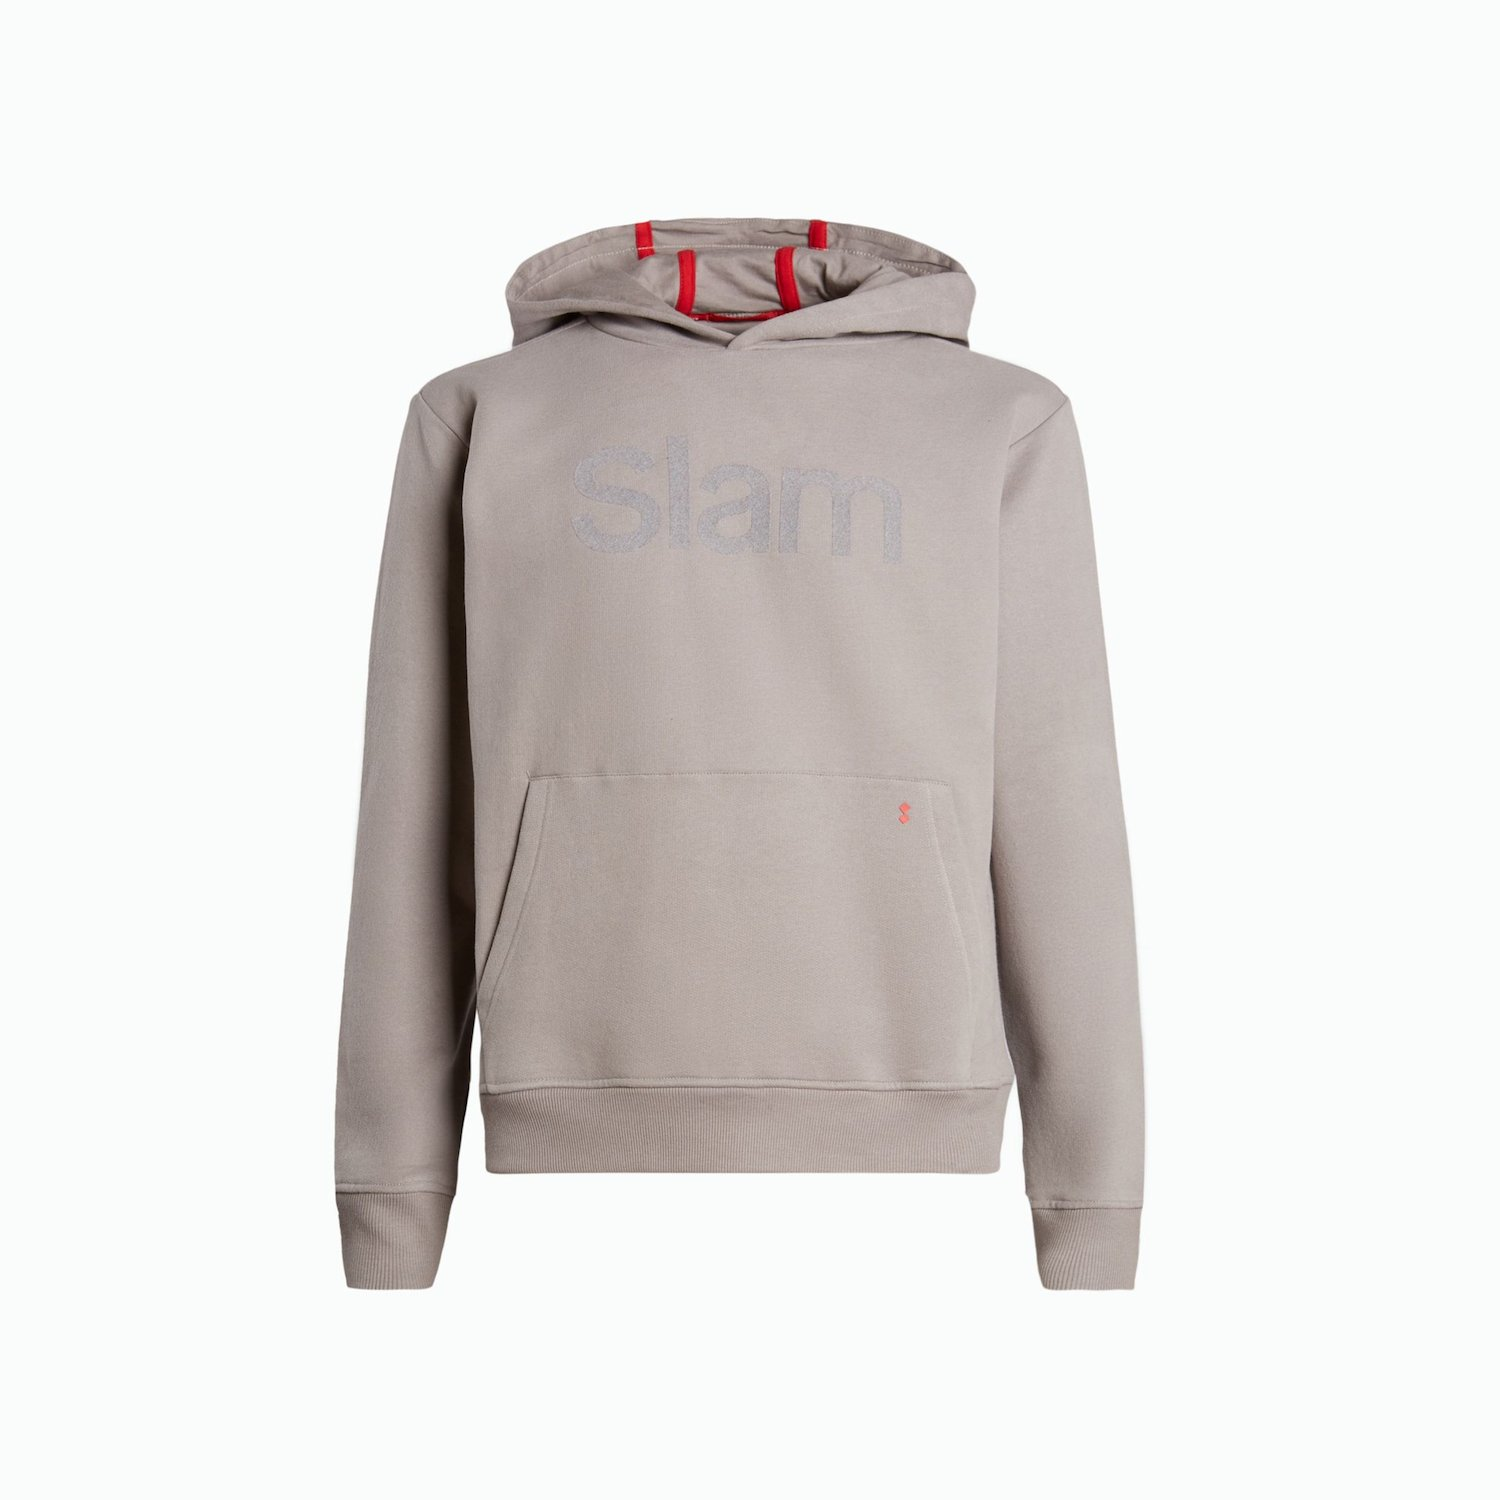 B167 sweatshirt - Frost Grey